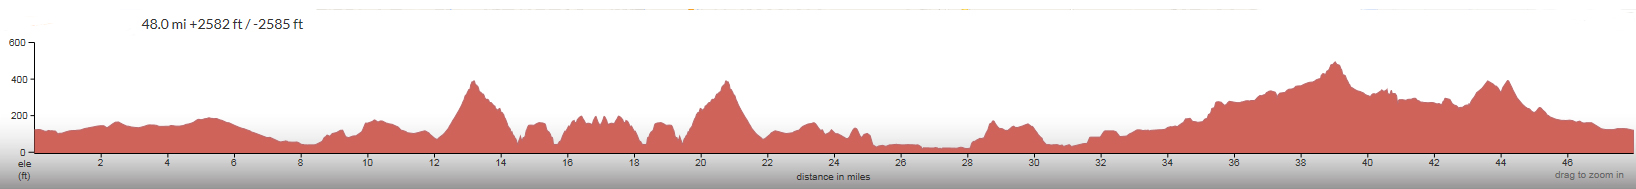 LopezMontana-de-Oro-Morro-SLO-Elevation-Profile-2015